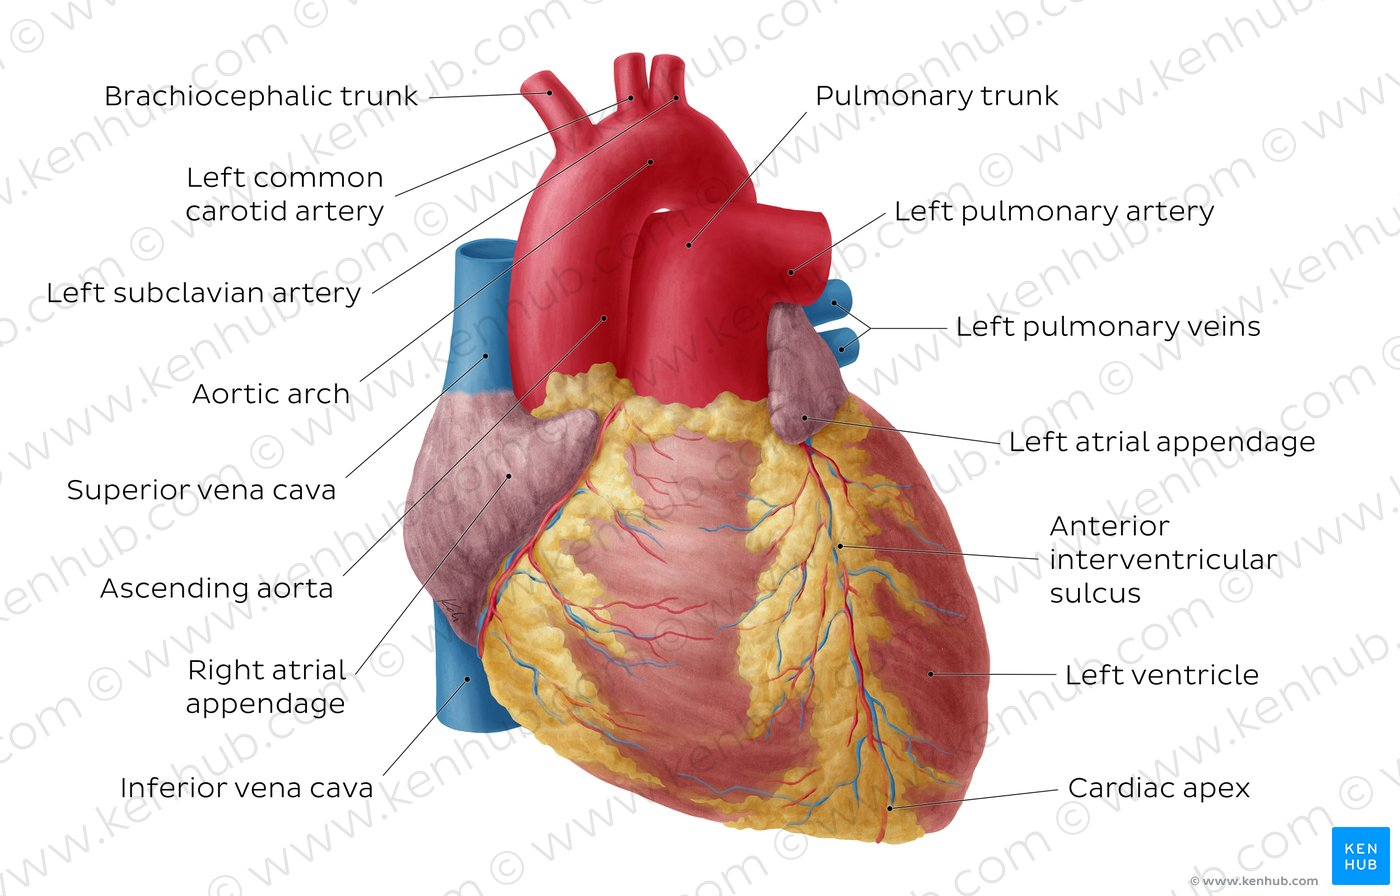 anterior heart diagram unlabeled diagramming sentences with conjunctions pictures view of the anatomy kenhub overview